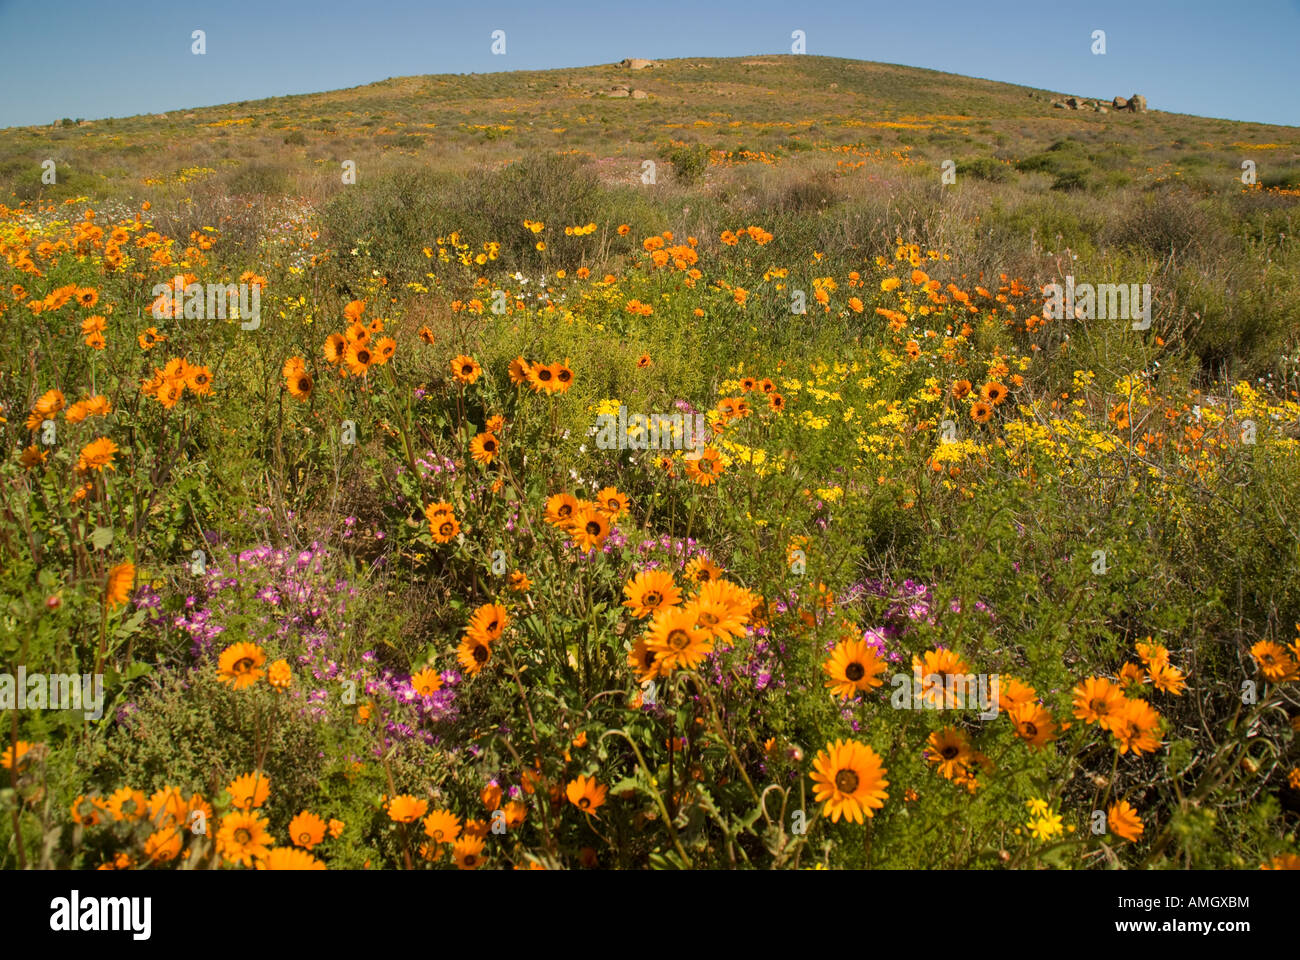 Namaqualand spring wildflowers near Kamieskroon, Northern Cape, South Africa - Stock Image